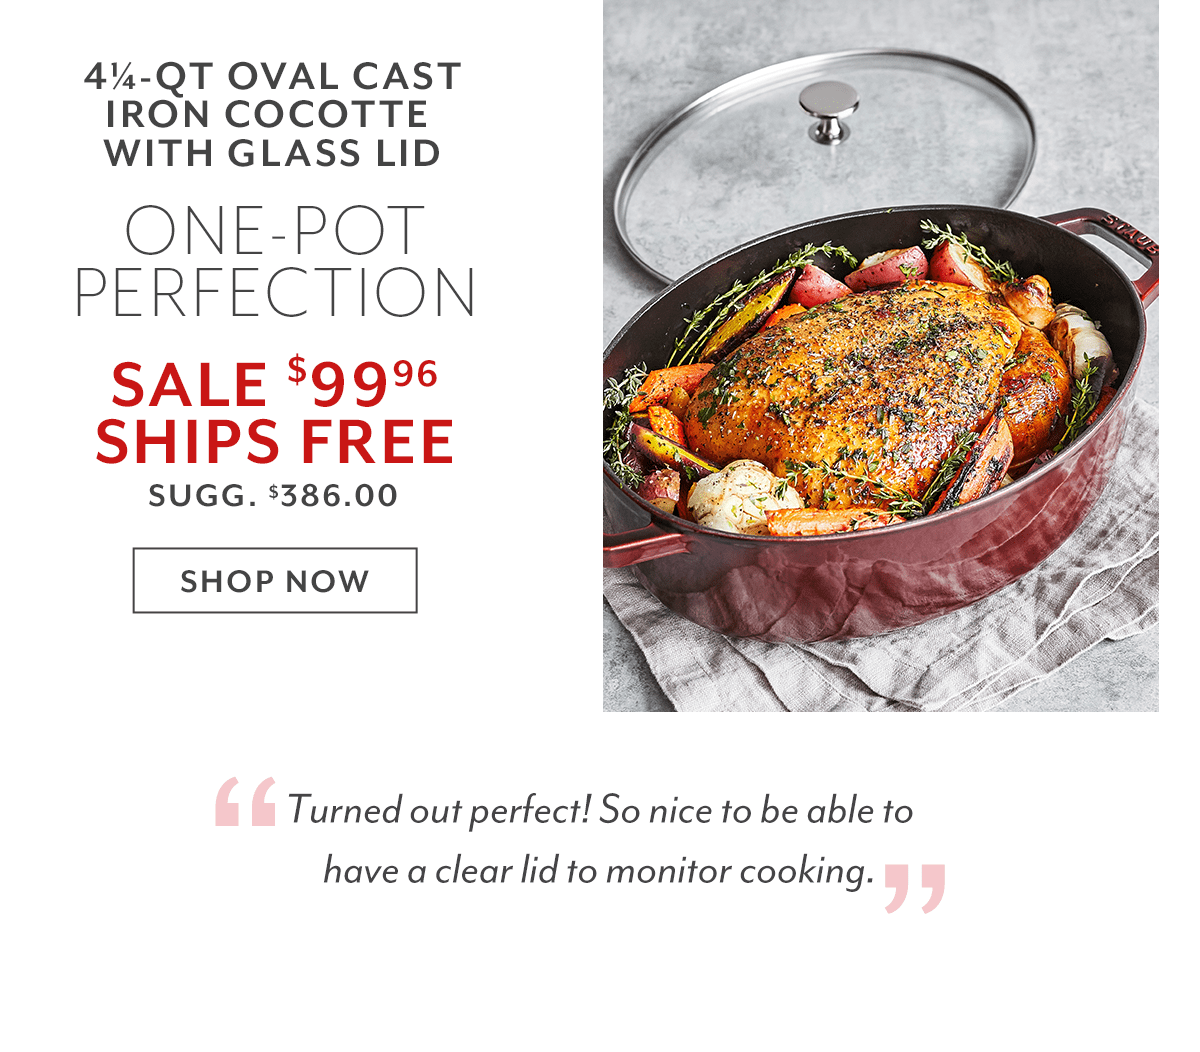 Oval Cast Iron Cocotte